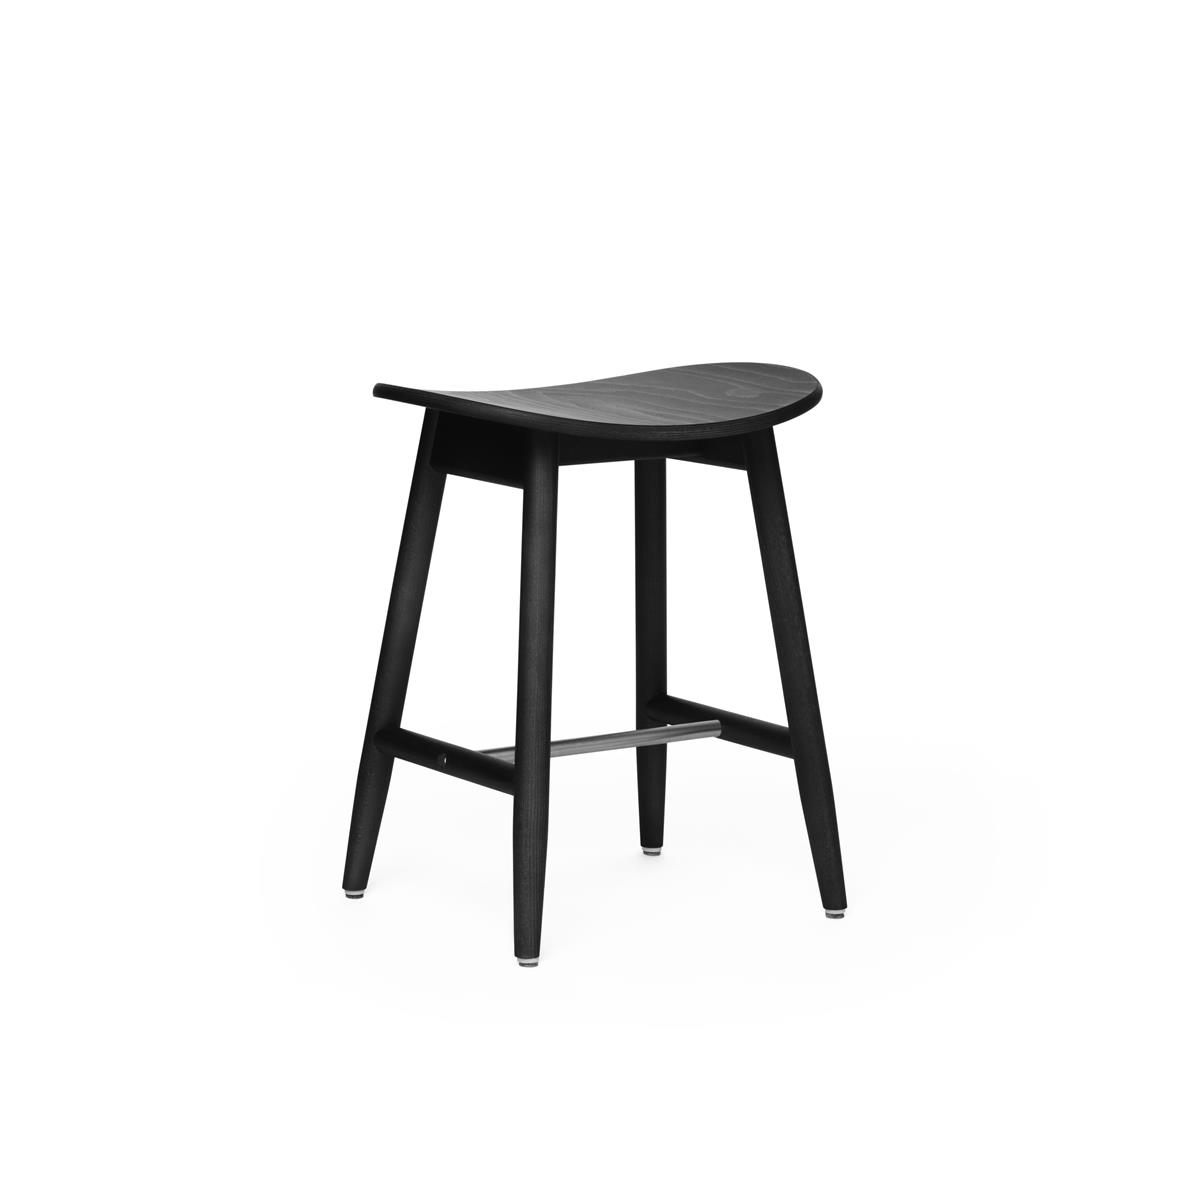 Icha Stool - Black Stained Oak